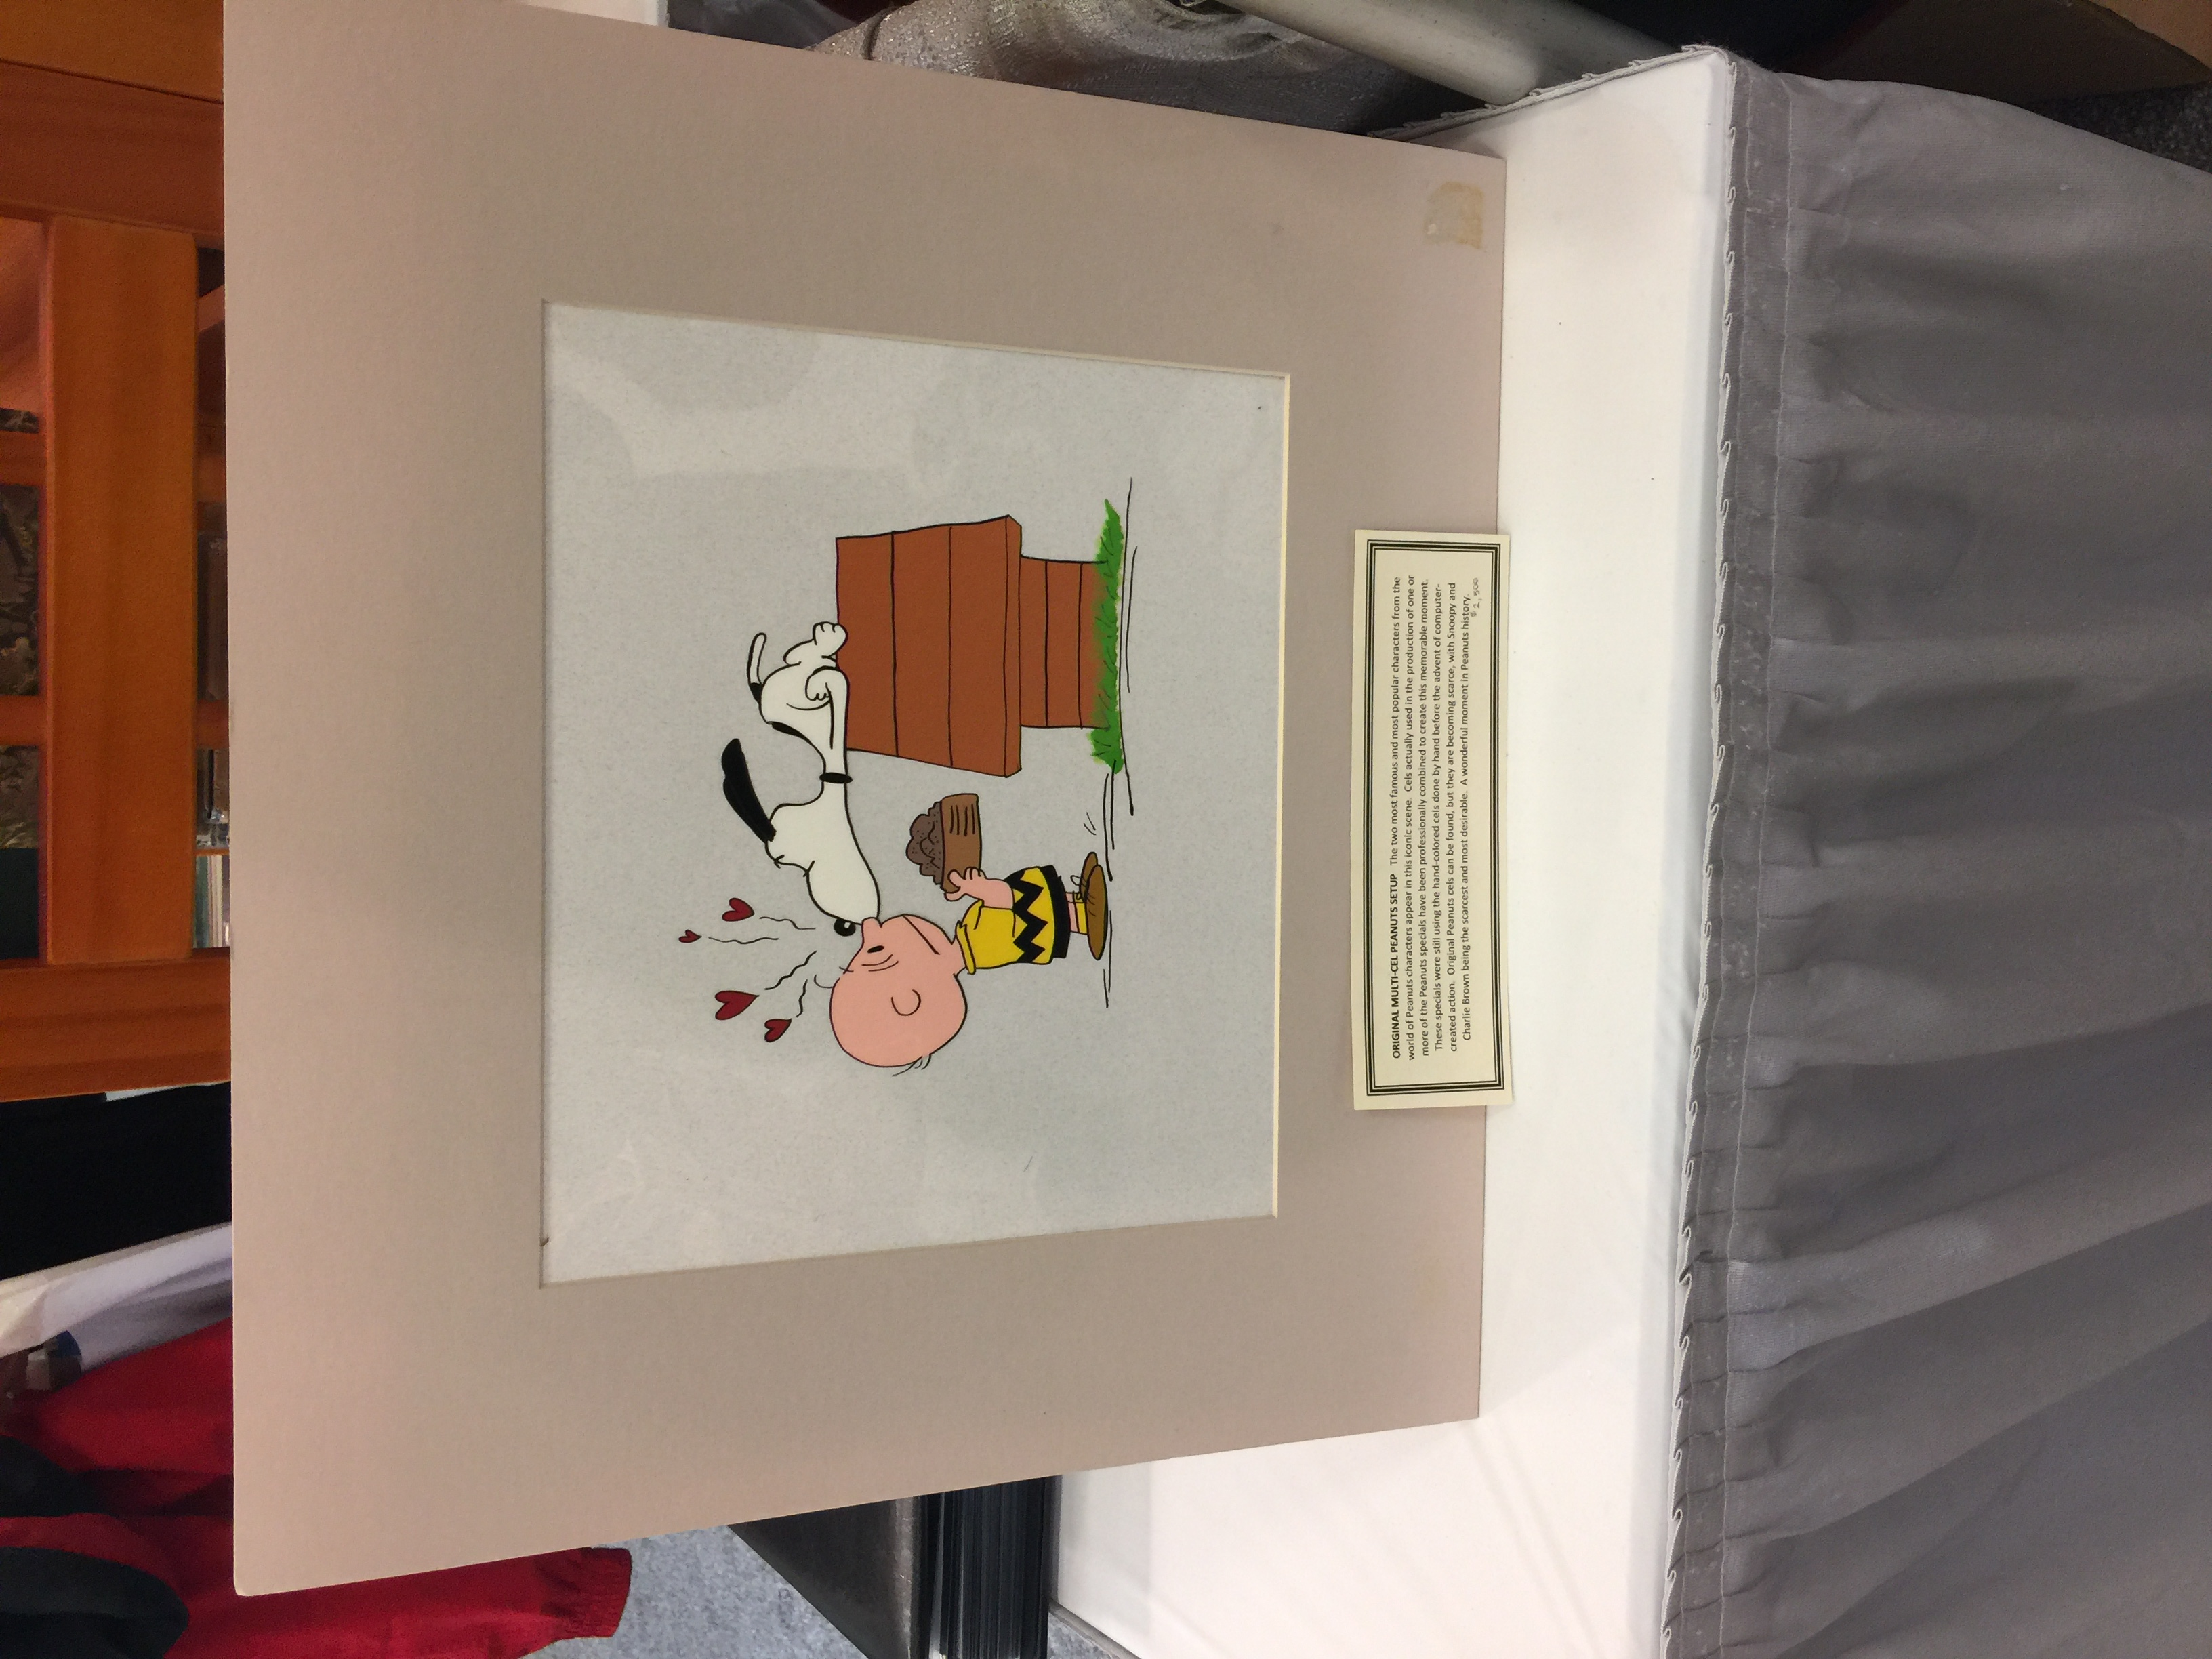 A Peanuts cel from one of the cartoons